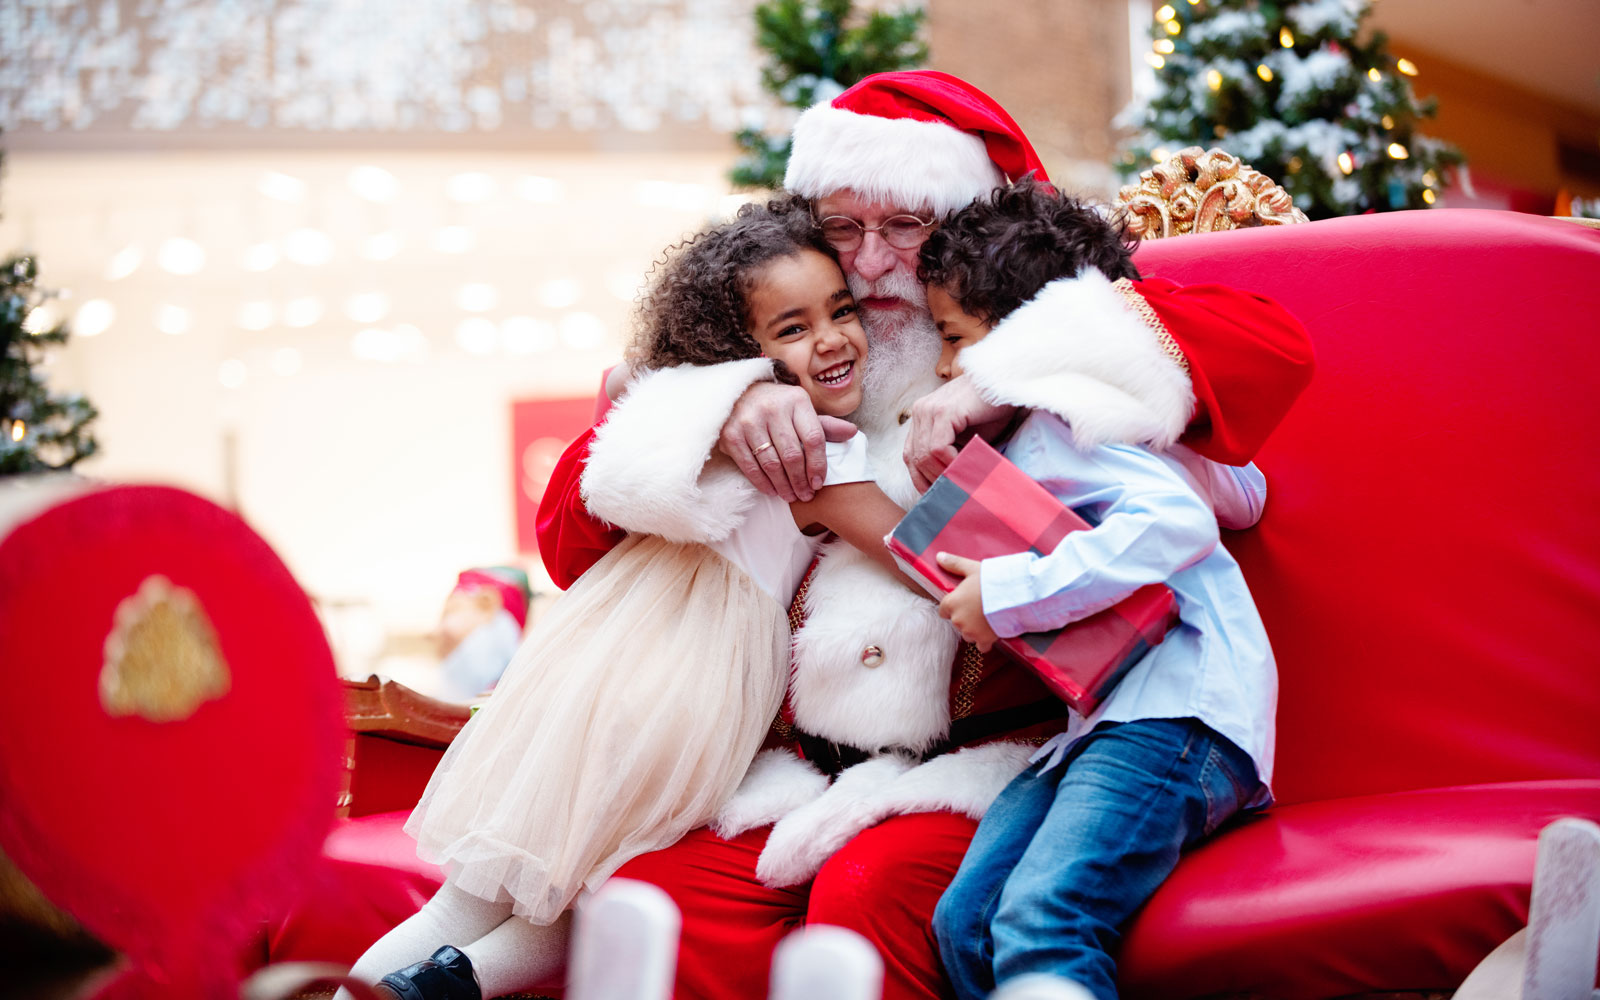 Two kids hugging Santa Claus